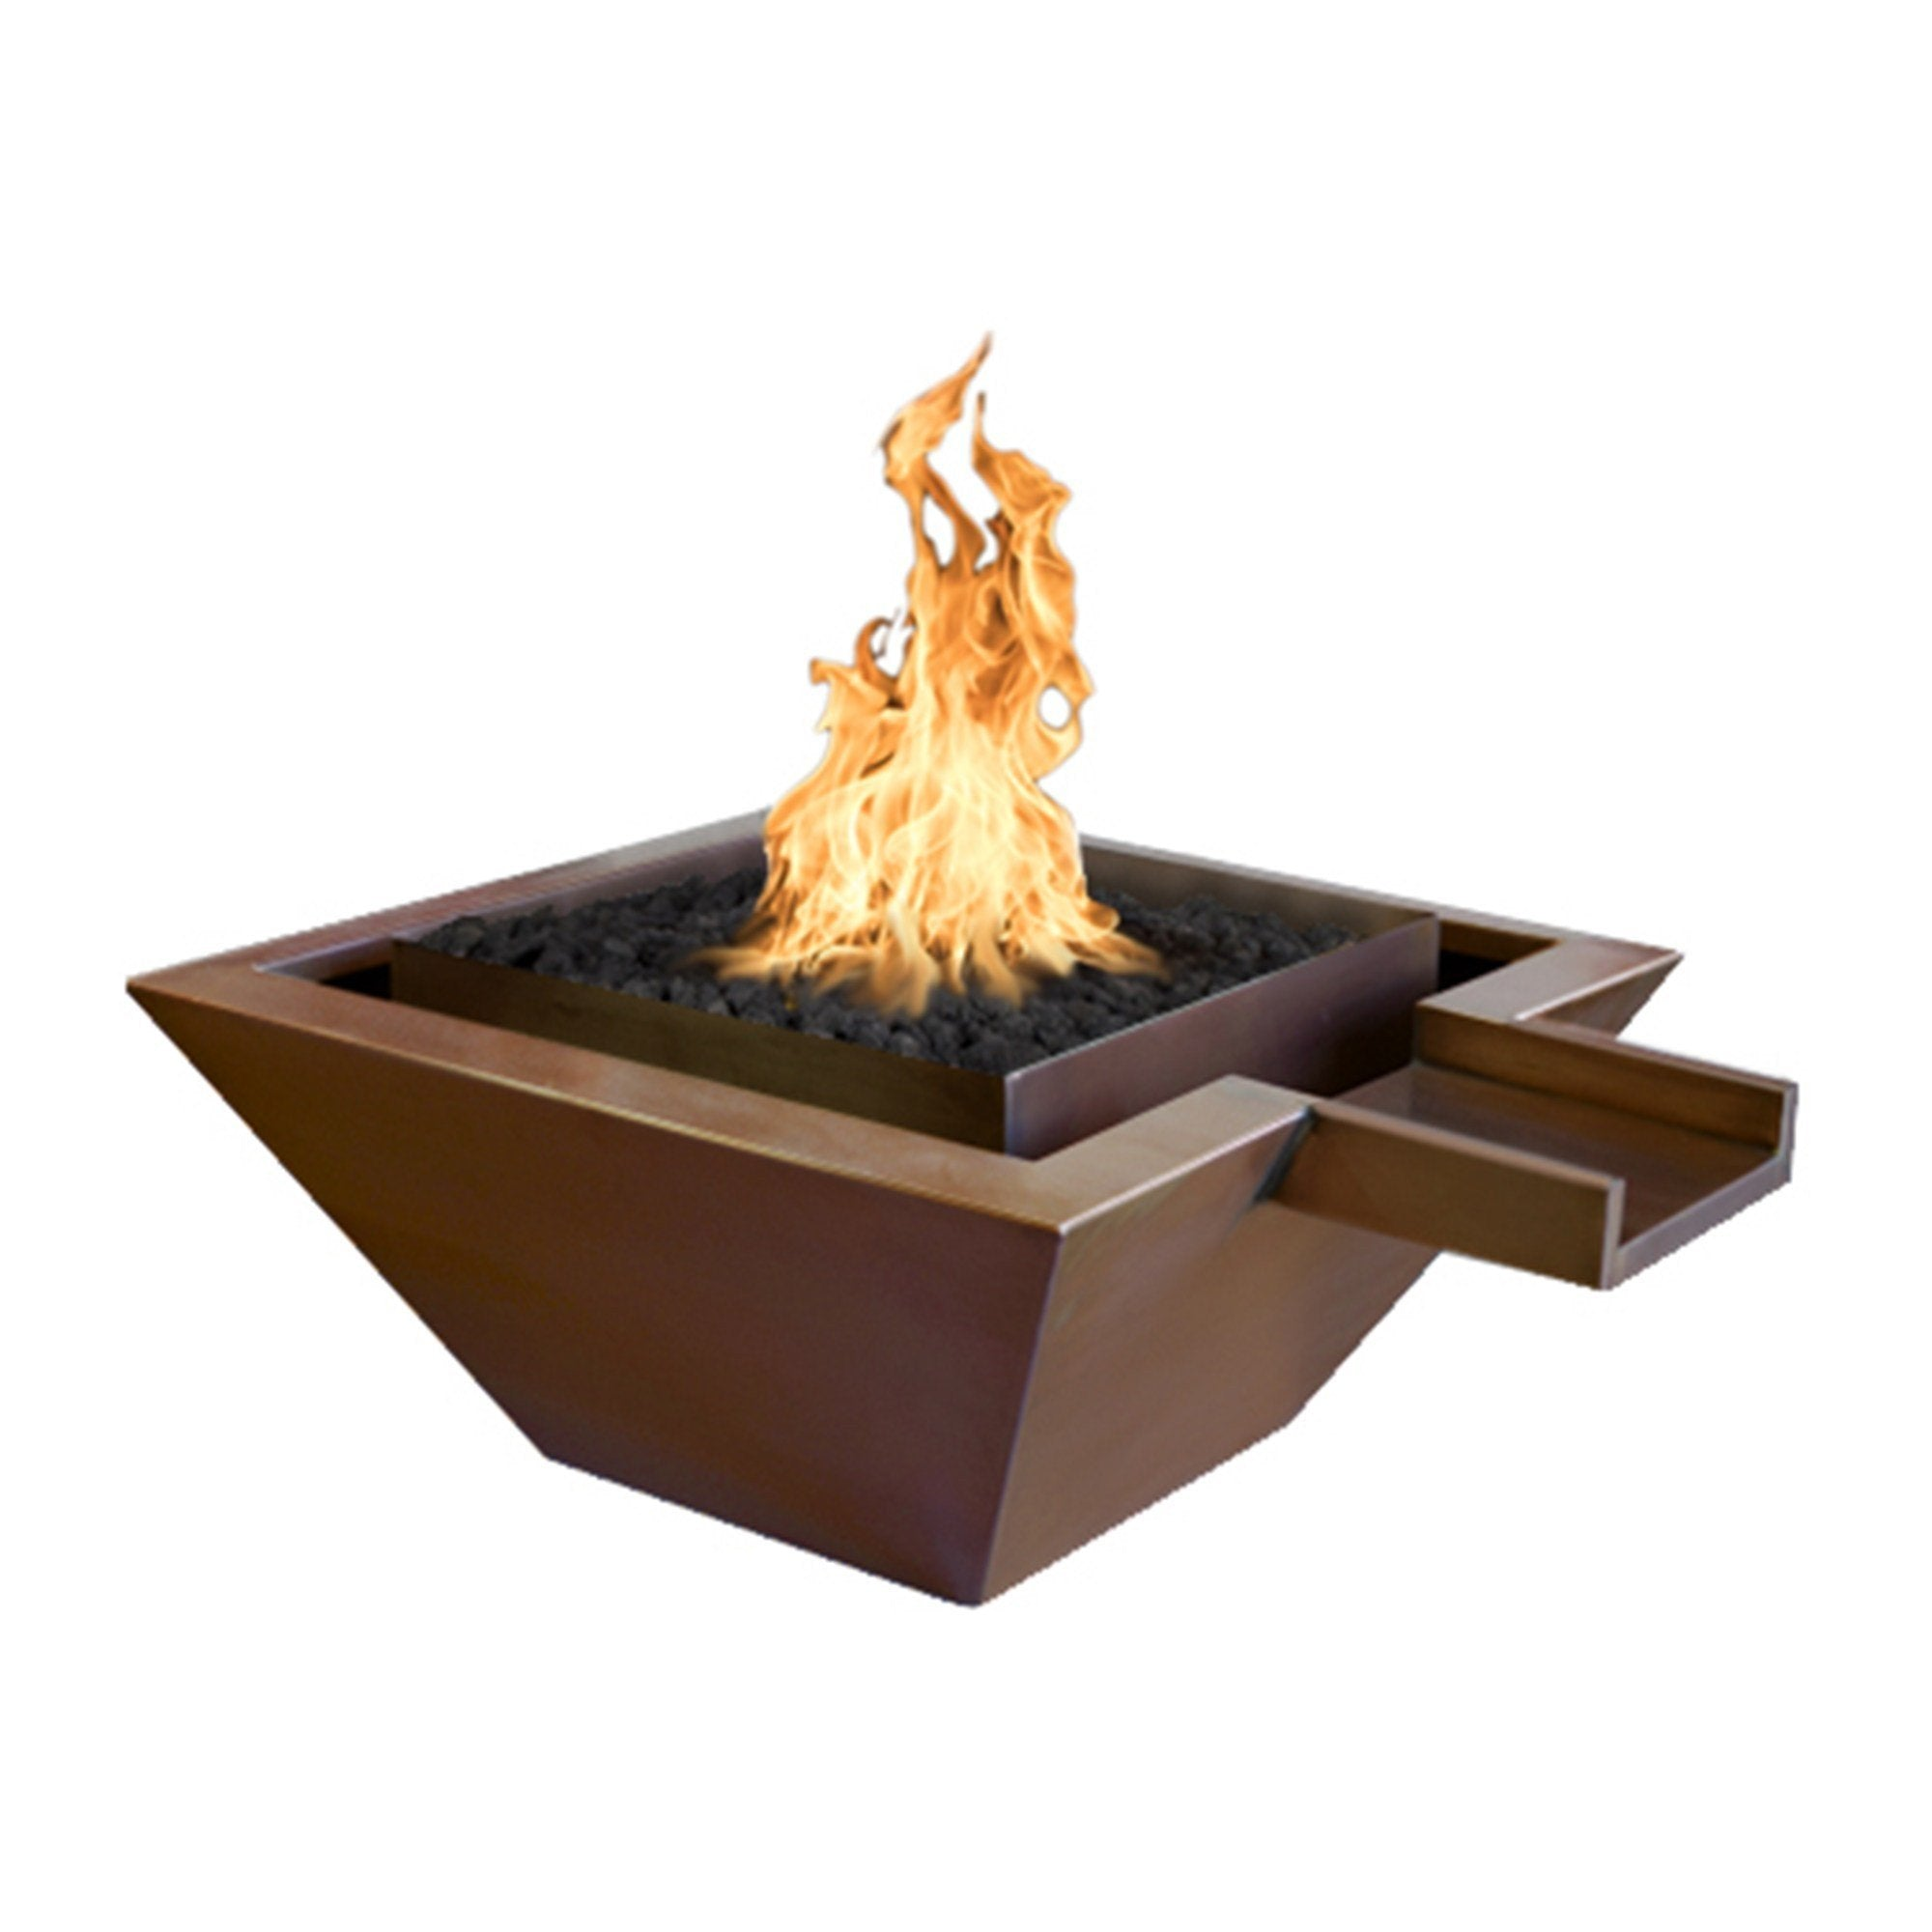 "TOP Fires by The Outdoor Plus Maya Hammered Patina Copper Gravity Spill Fire & Water Bowl 36"" - Fire Pit Oasis"